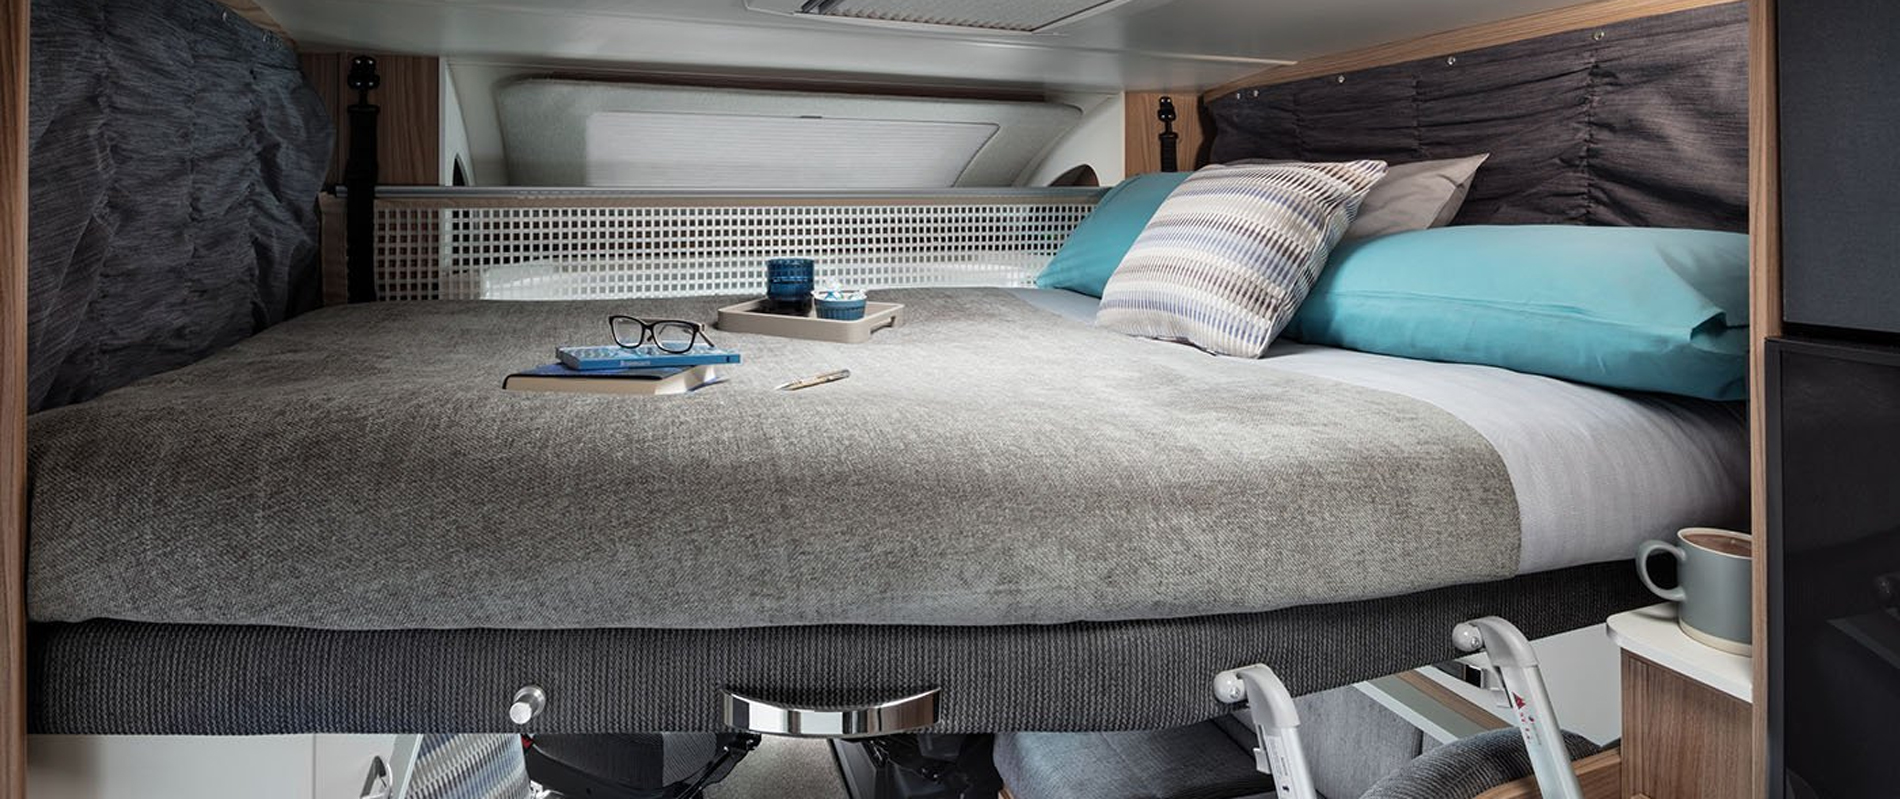 Suspended bed inside hired motorhome, with books and reading glasses on mattress